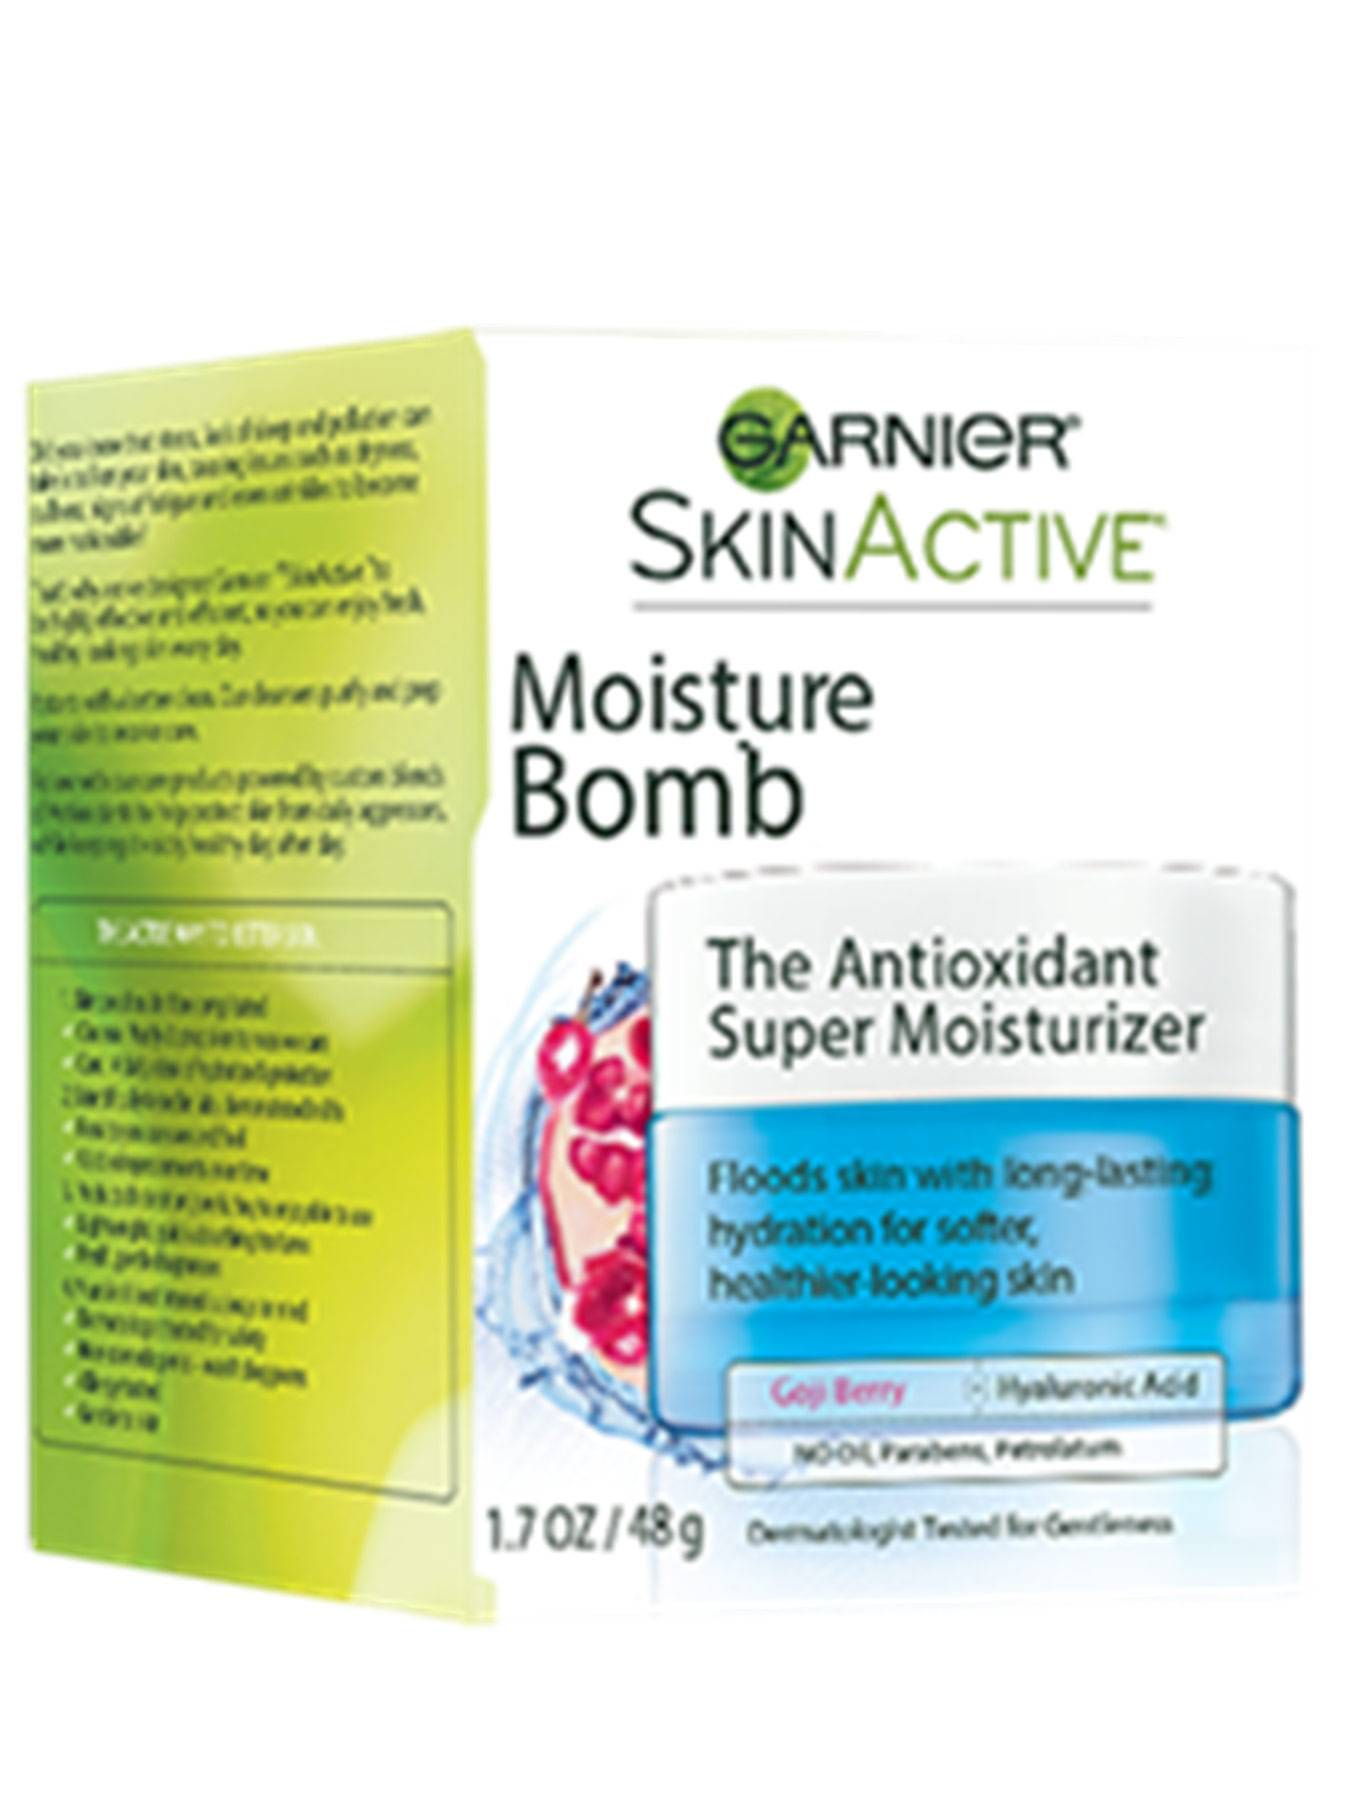 Front view of Moisture Bomb The Antioxidant Super Moisturizer box.